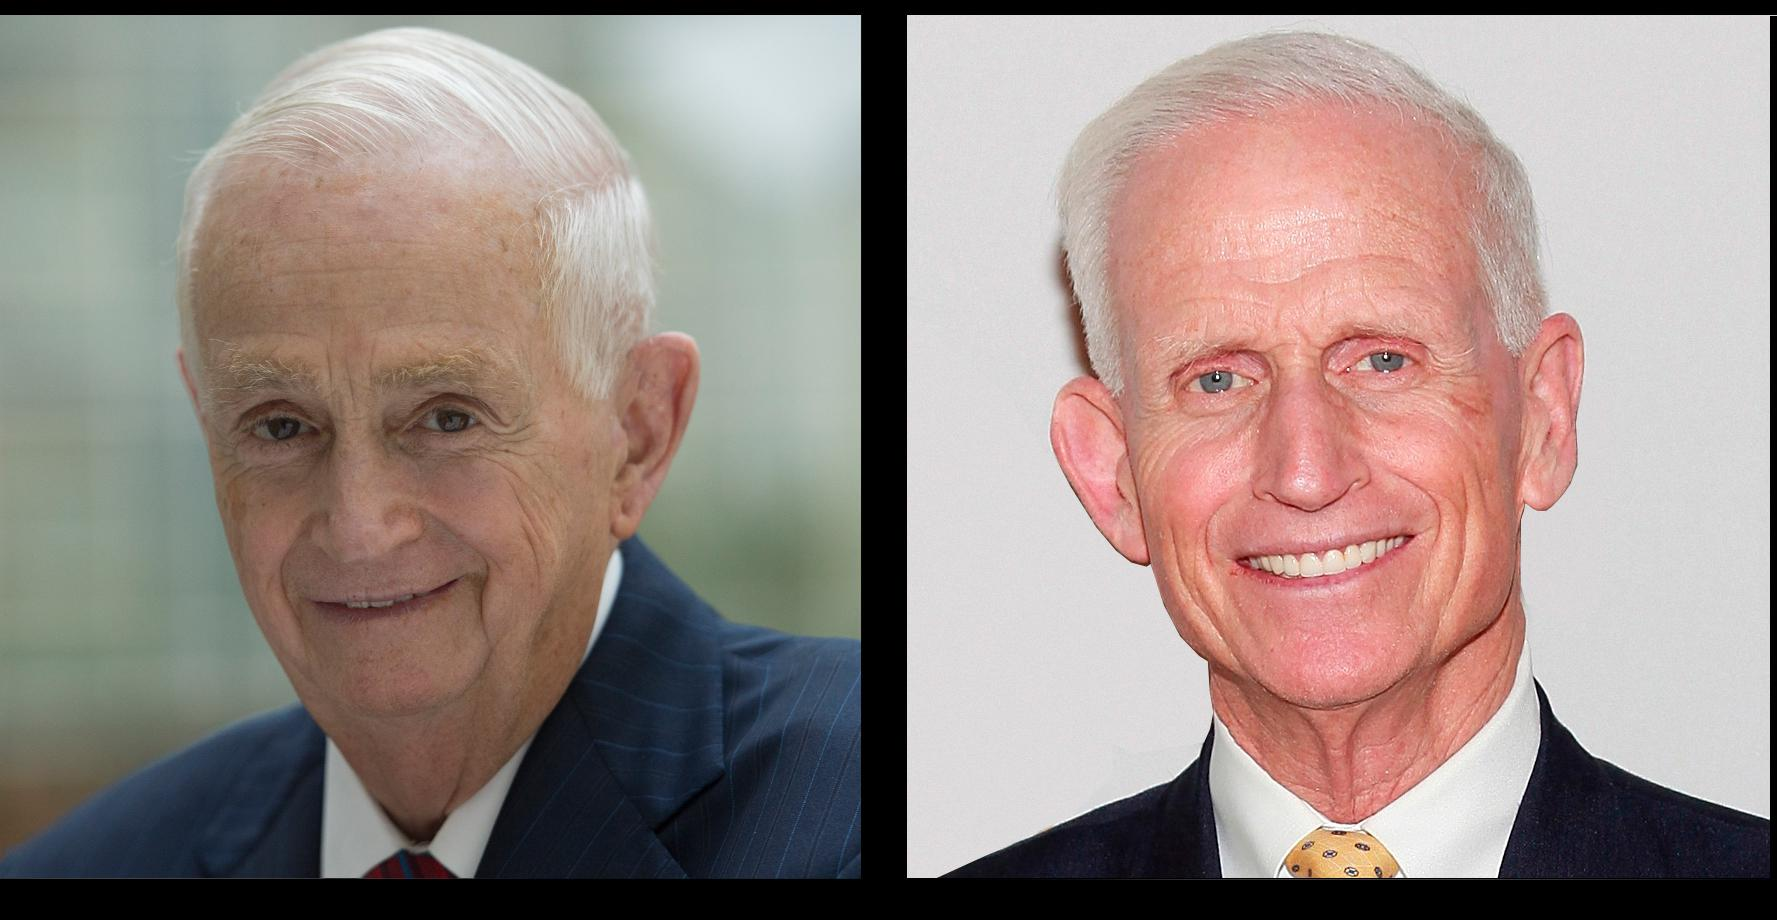 Brothers and hotel tycoons Bill (left) and Richard Marriott. Bill chairs Marriott International; Richard chairs Host Hotels & Resorts.